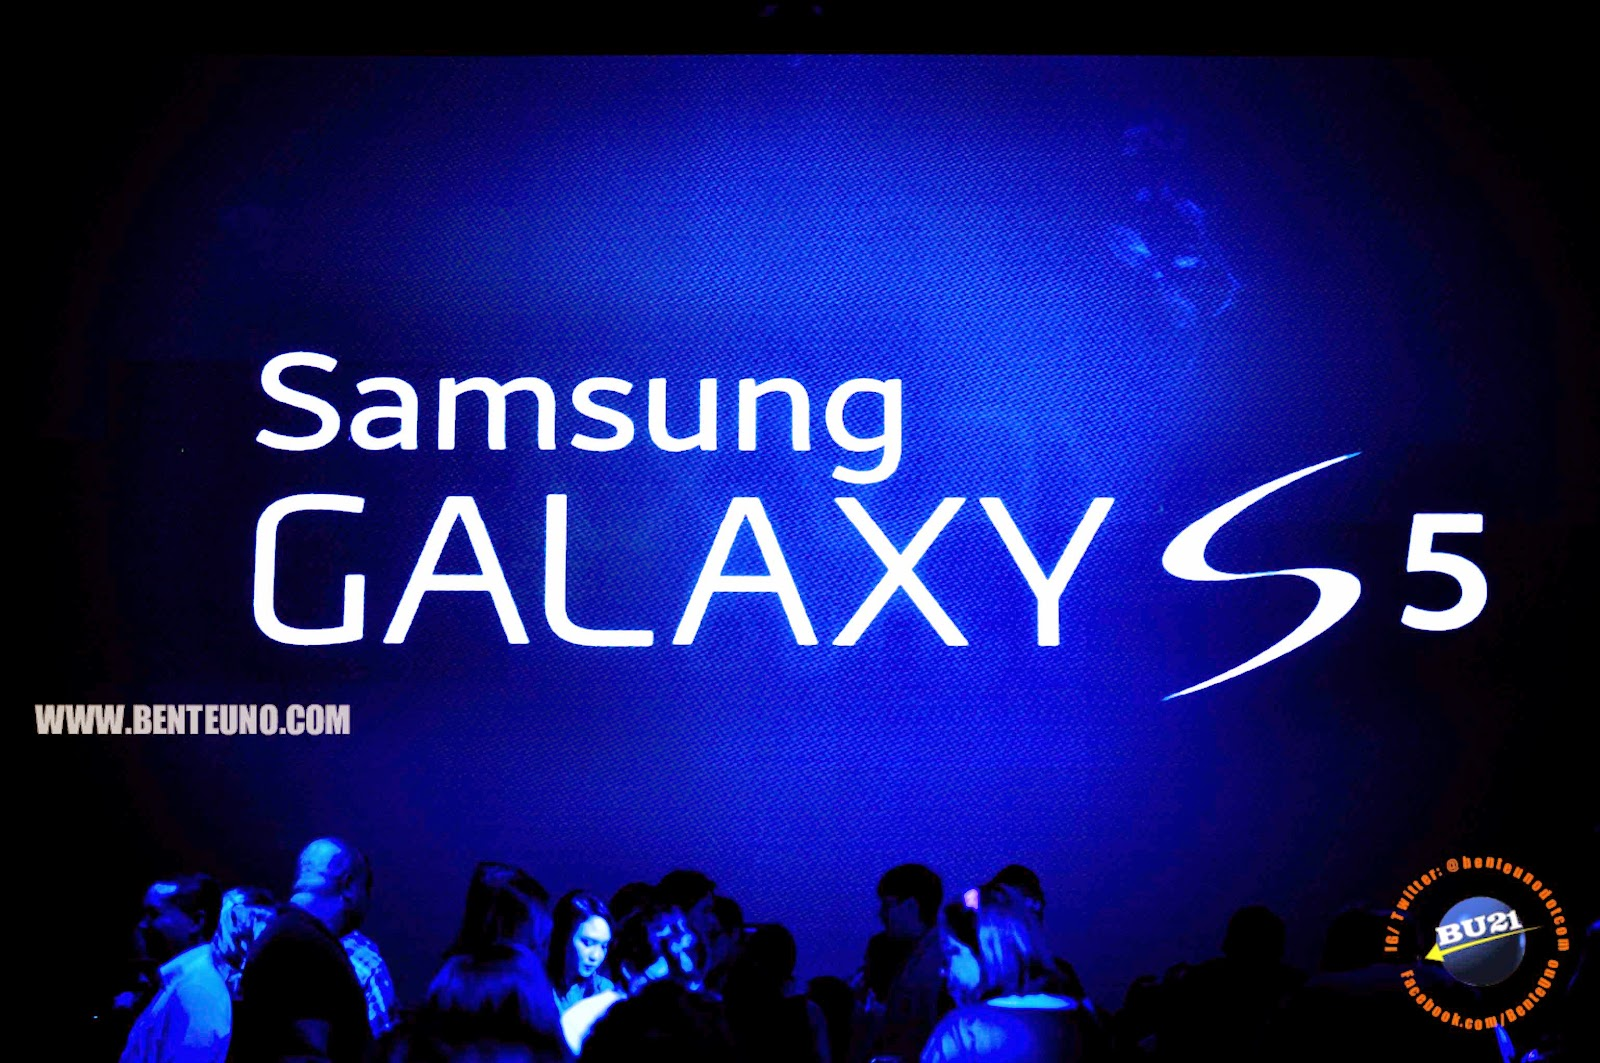 Samsung Galaxy S5 officially unveiled in the Philippines at the Samsung Hall located in SM Aura Premier